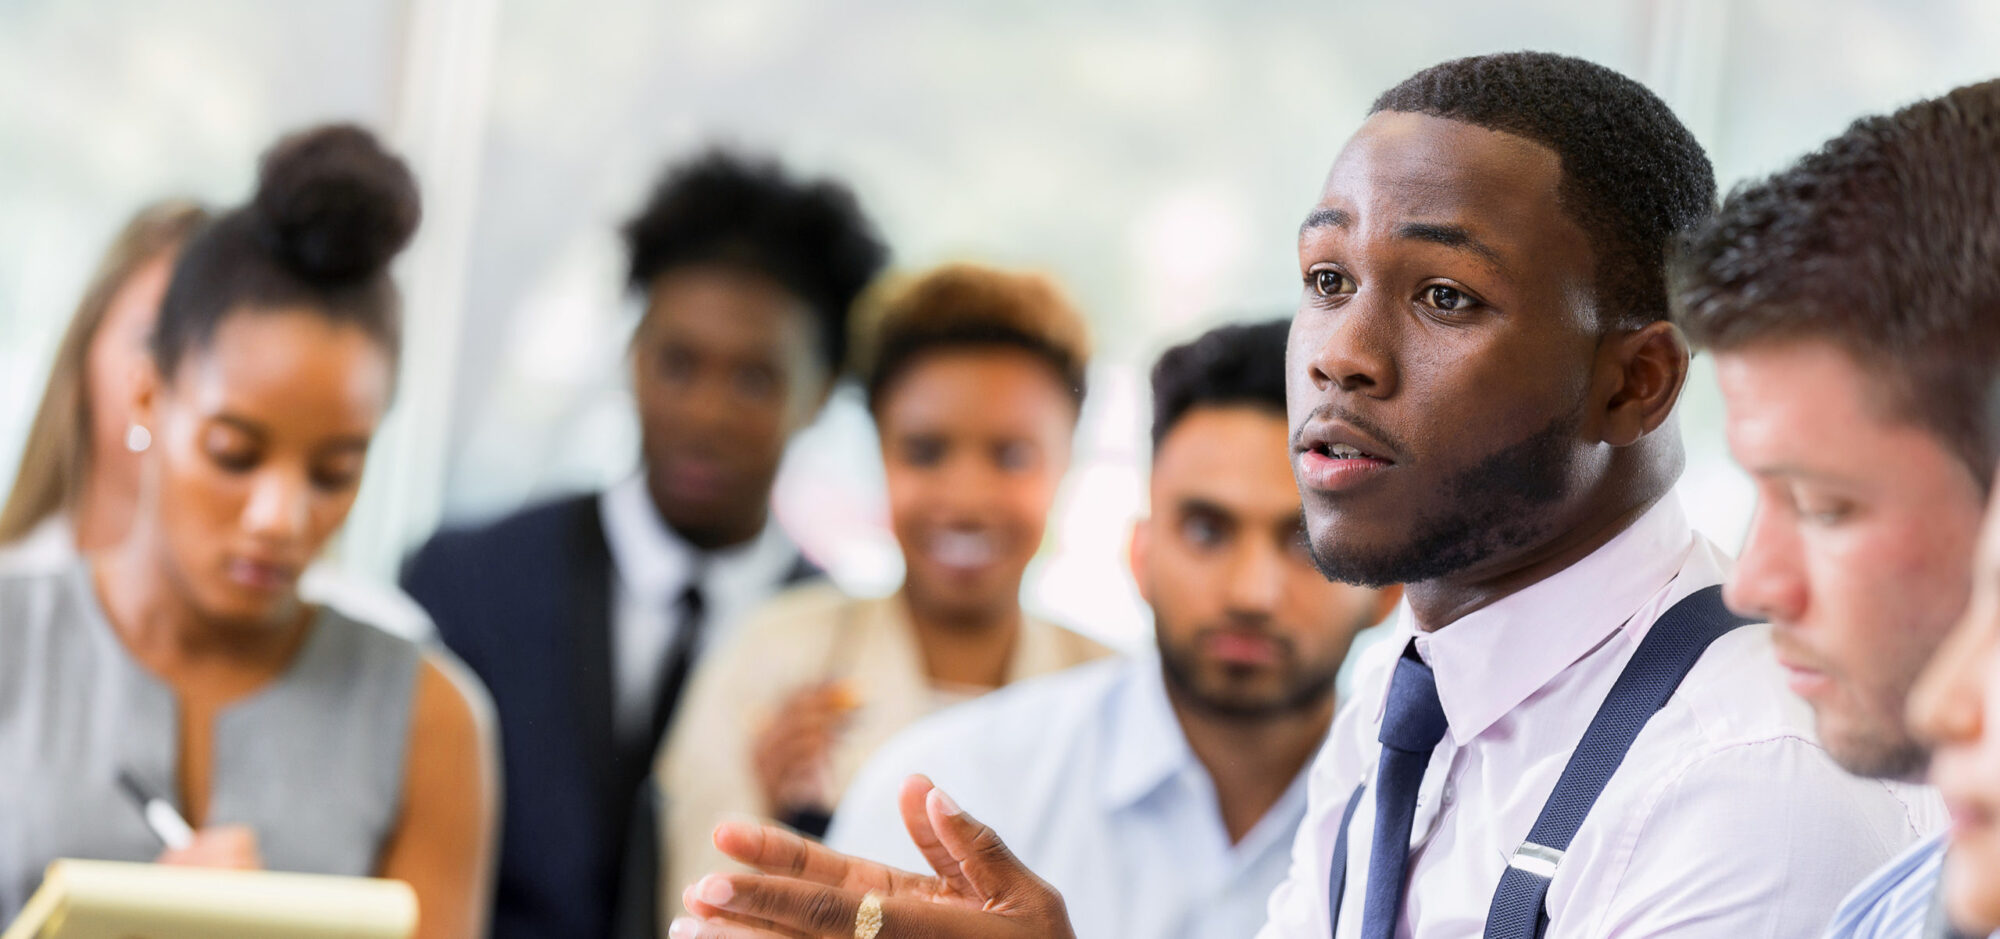 A serious young African American male business student talks with his hands as he sits at a table in a lecture hall and poses a question to an unseen professor. Other students sit in the audience in the background.